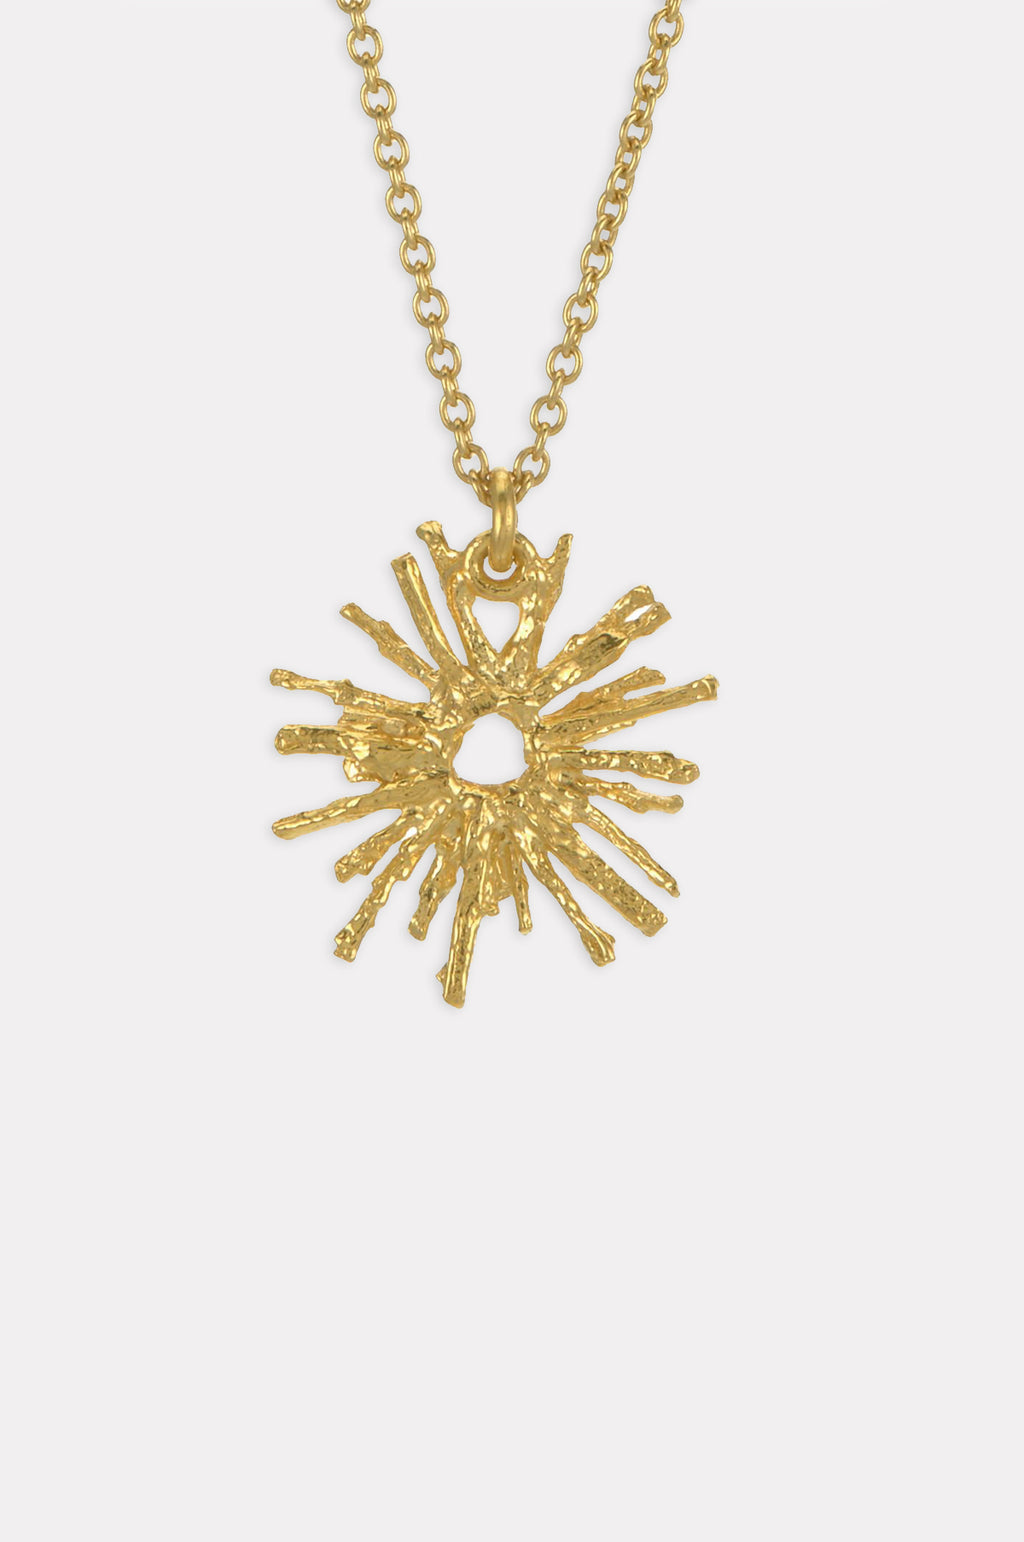 Nest Structure Full Circle Necklace Gold Plate